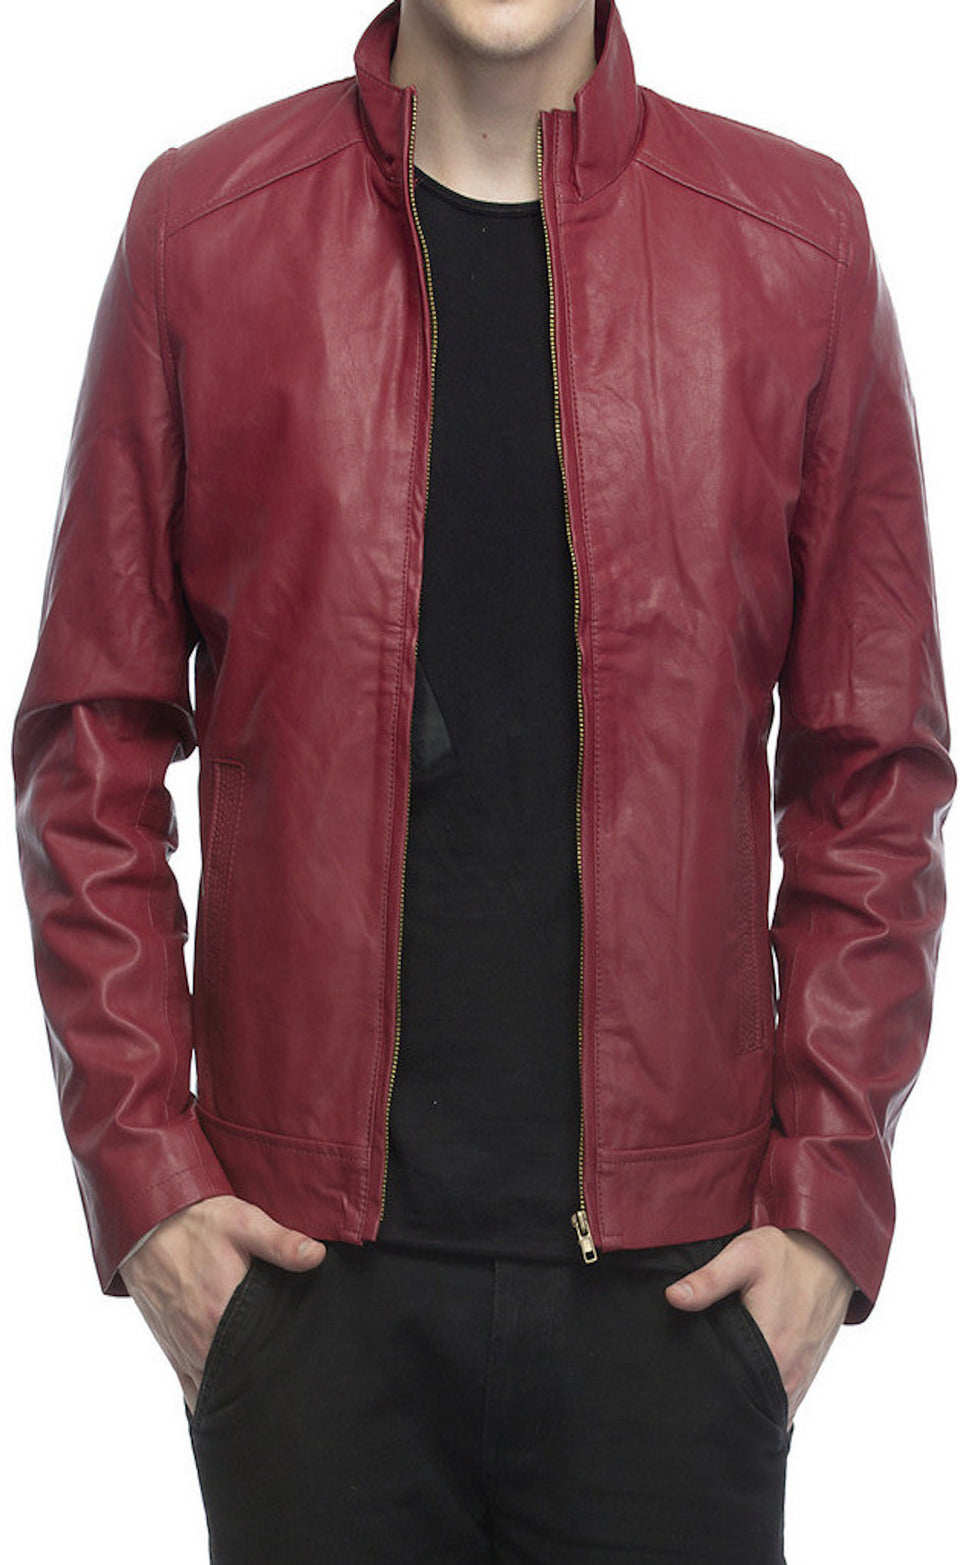 SOLID MEN'S JACKET - BABBALBUY